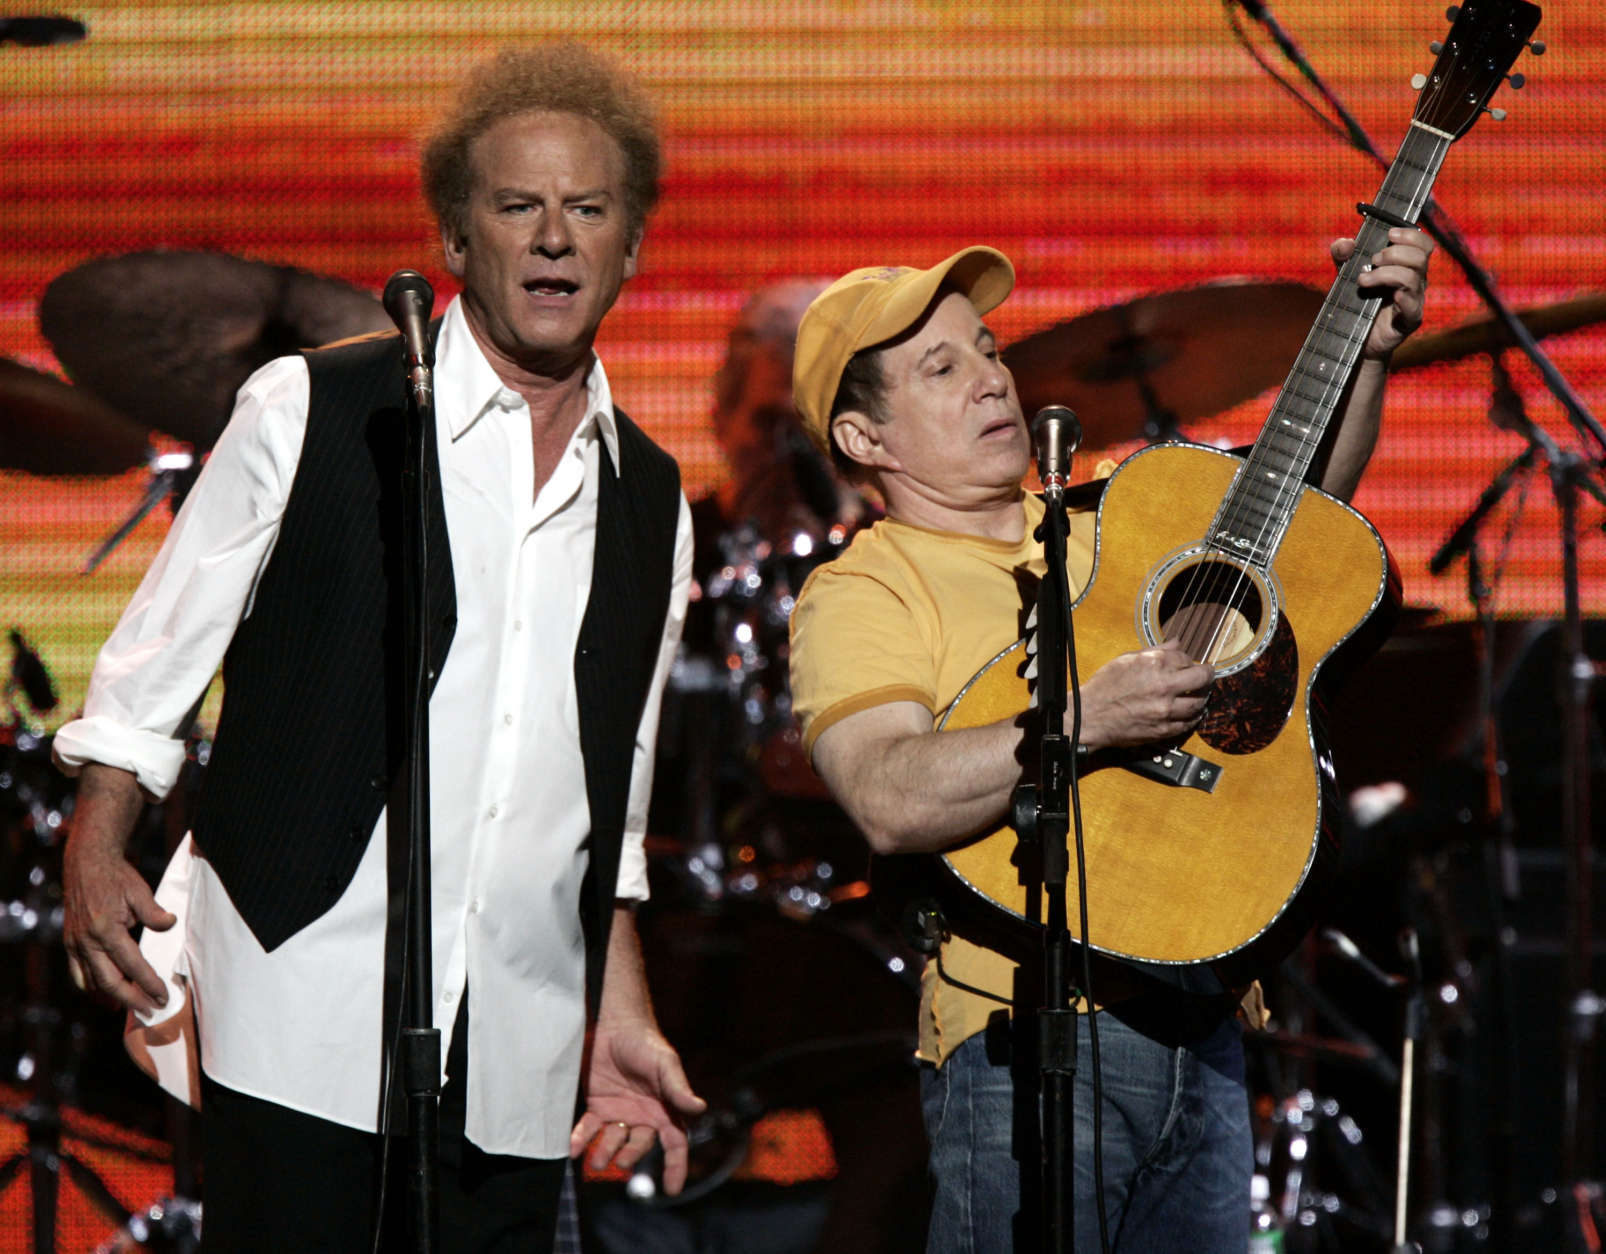 """Art Garfunkel, left, and Paul Simon perform during the """"From the Big Apple to the Big Easy"""" benefit concert, Tuesday, Sept. 20, 2005, in New York's Madison Square Garden. Proceeds from the concert will be donated to Hurricane Katrina relief.  (AP Photo/Jeff Christensen)"""